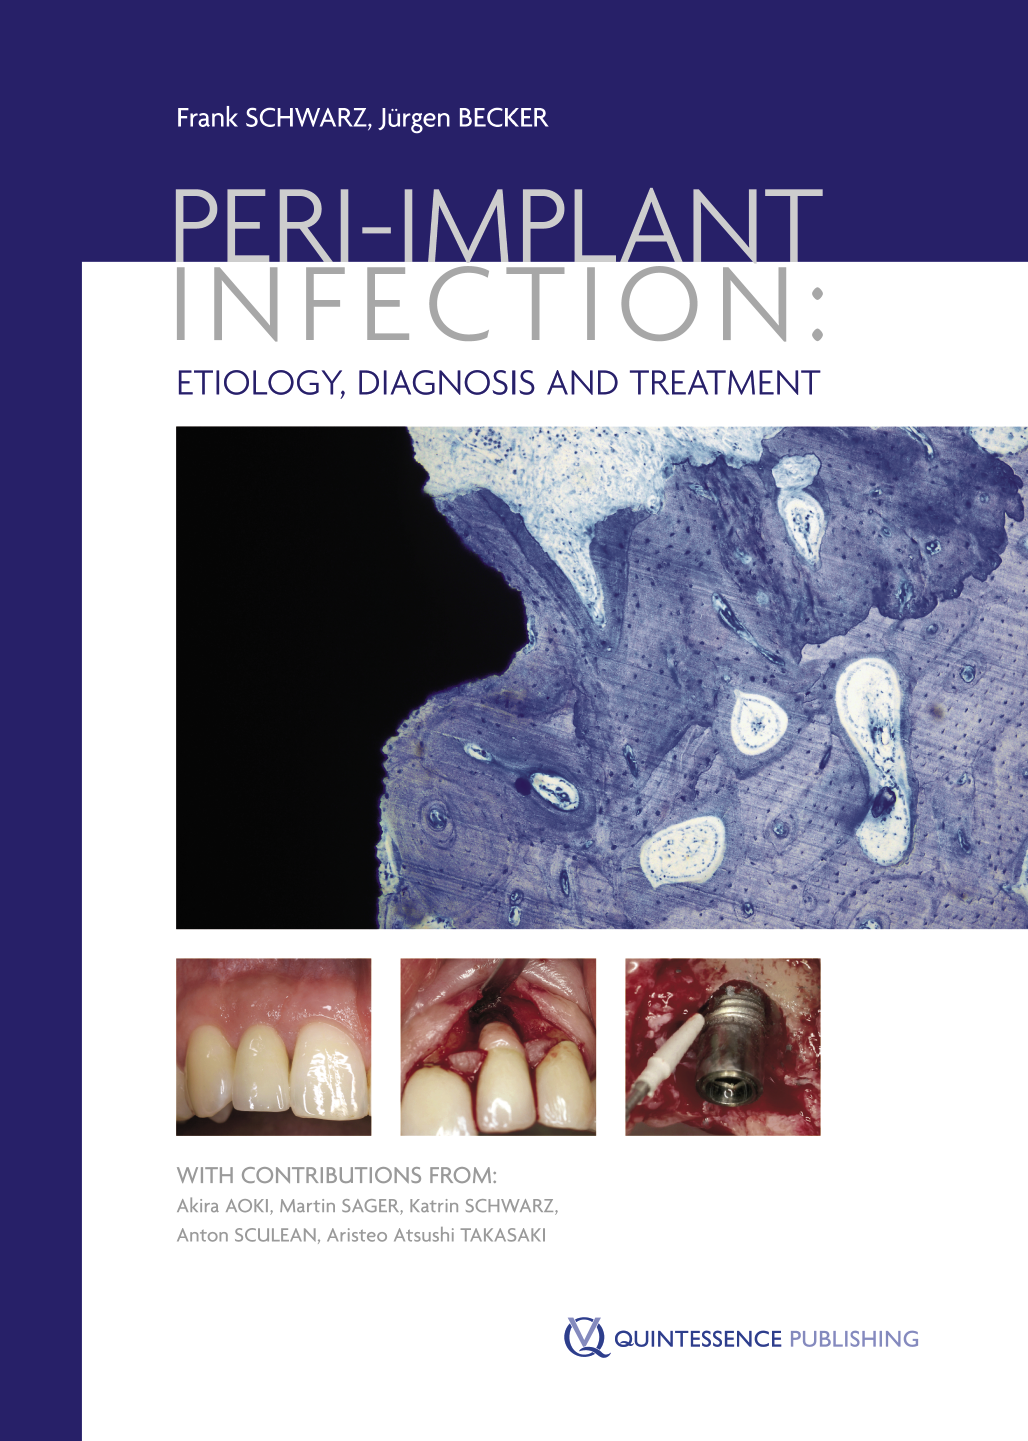 Peri-implant Infections